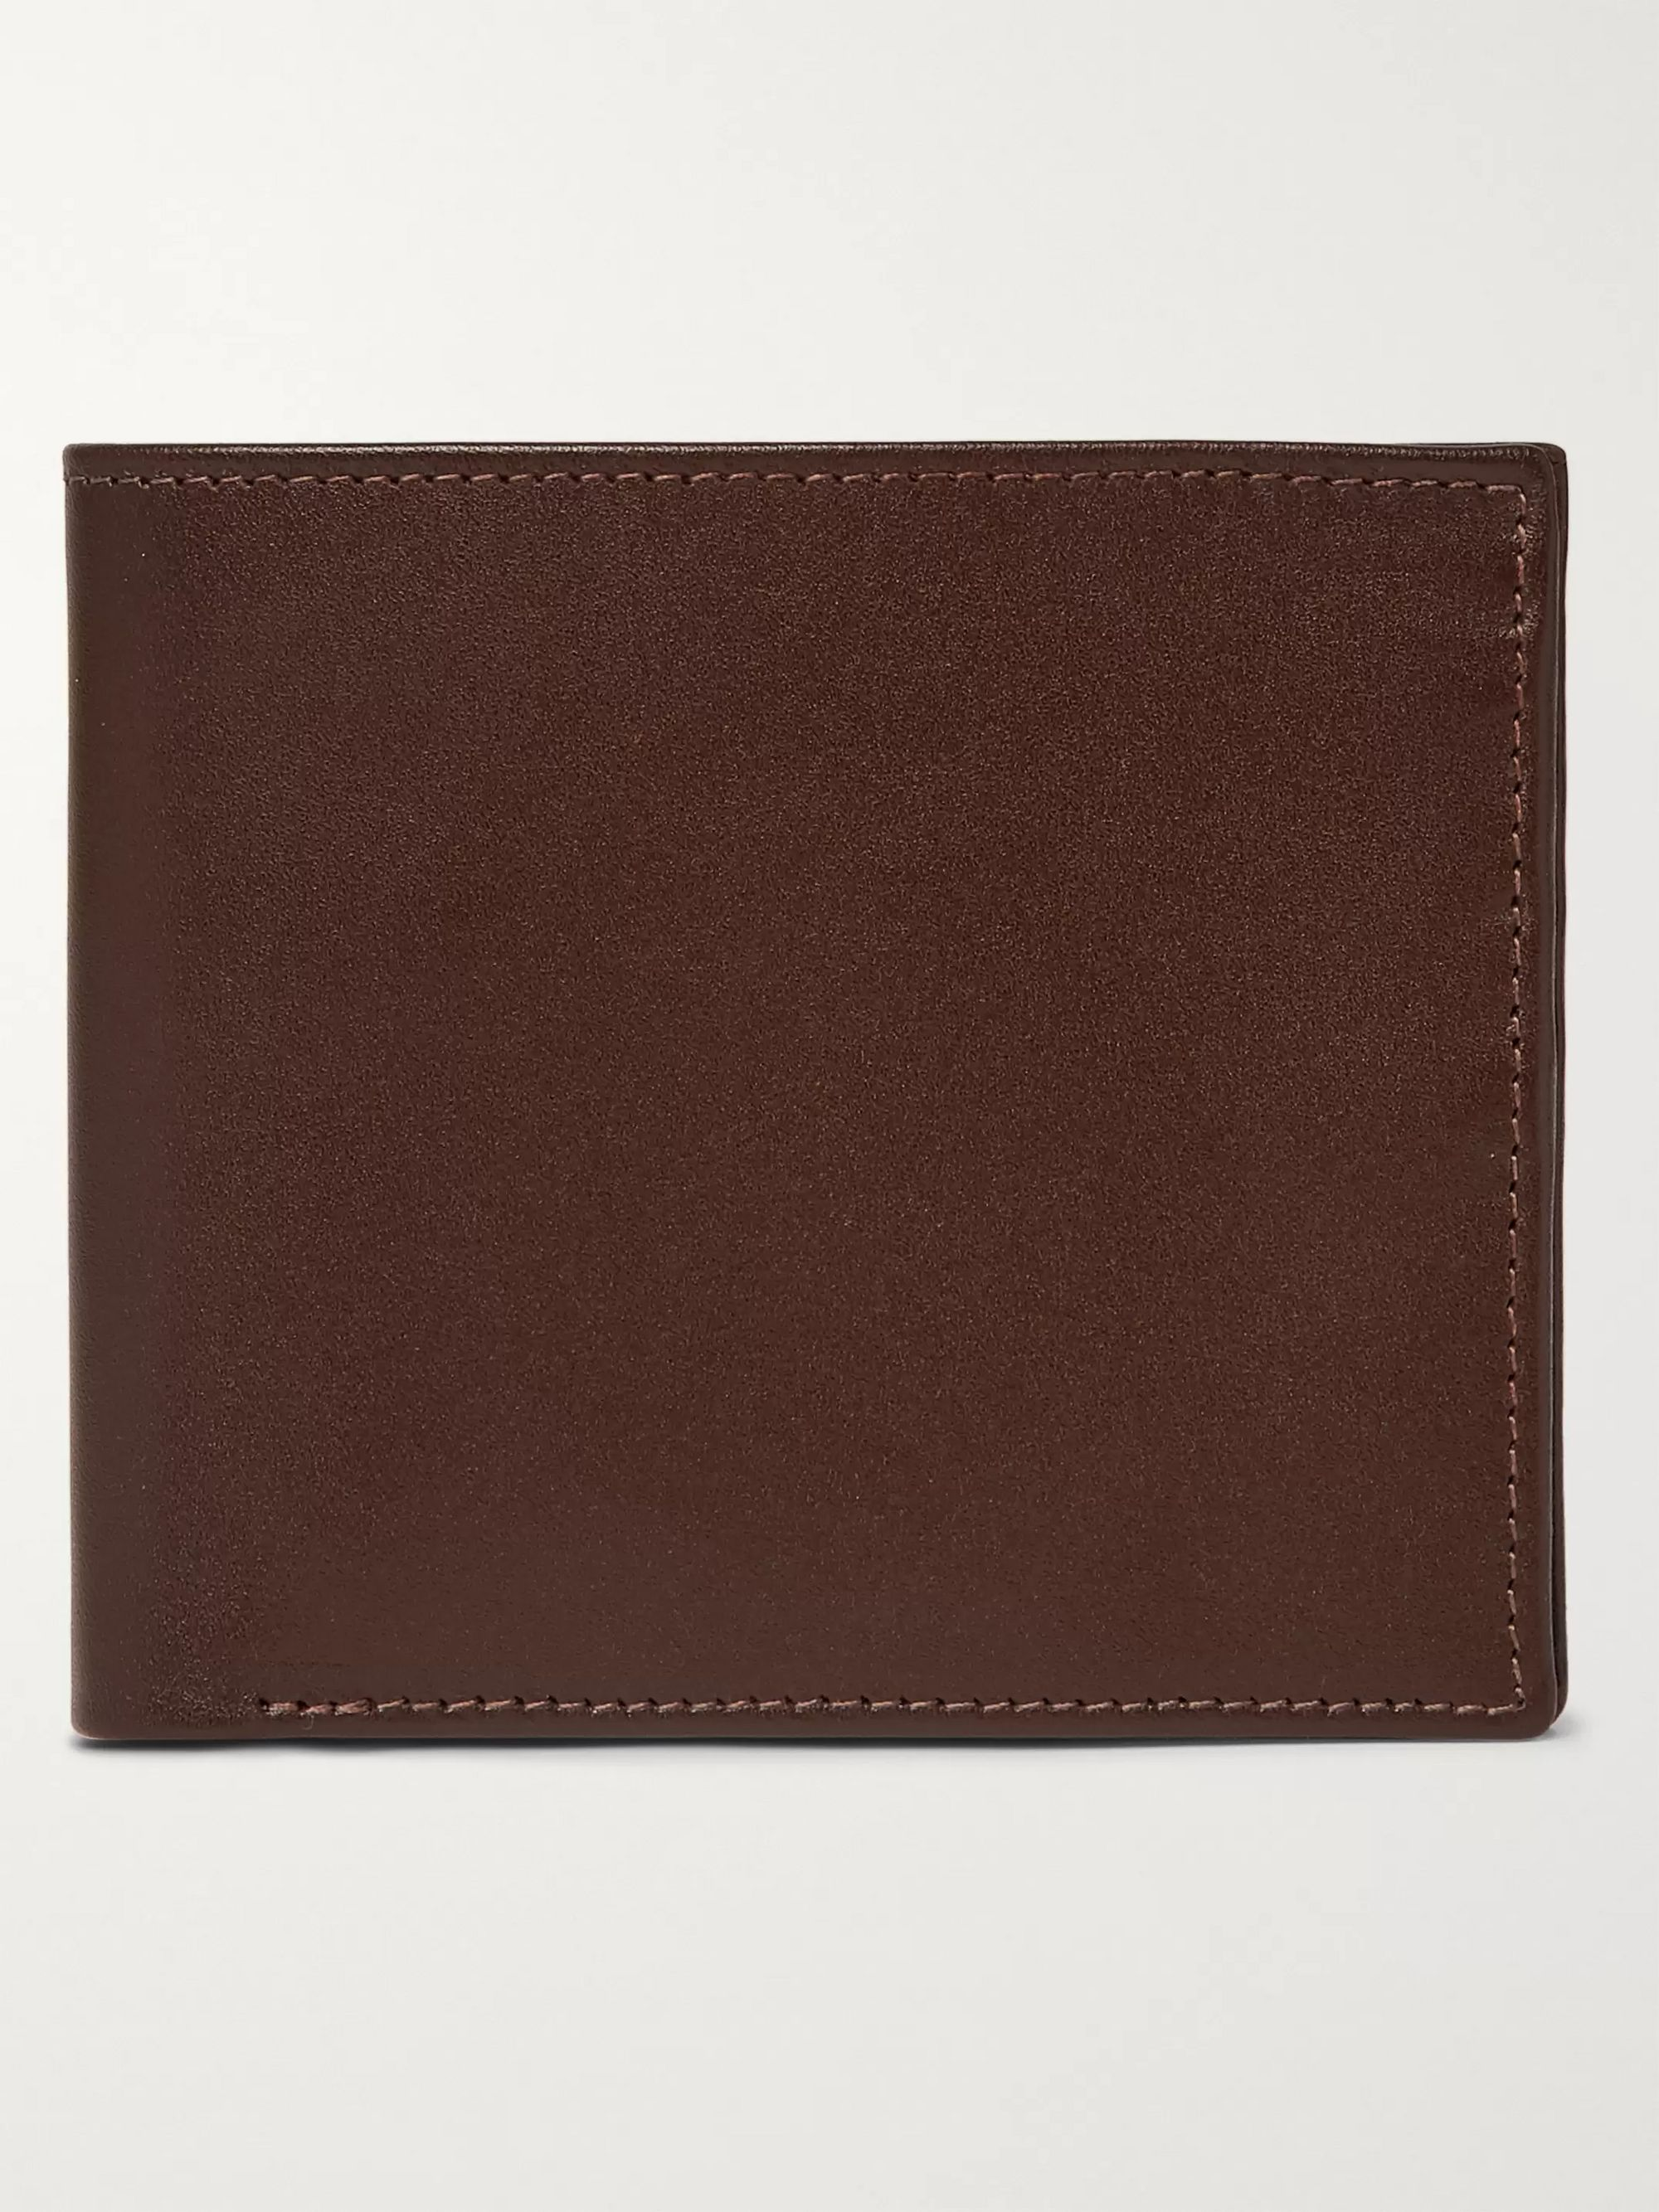 George Cleverley Leather Billfold Cardholder